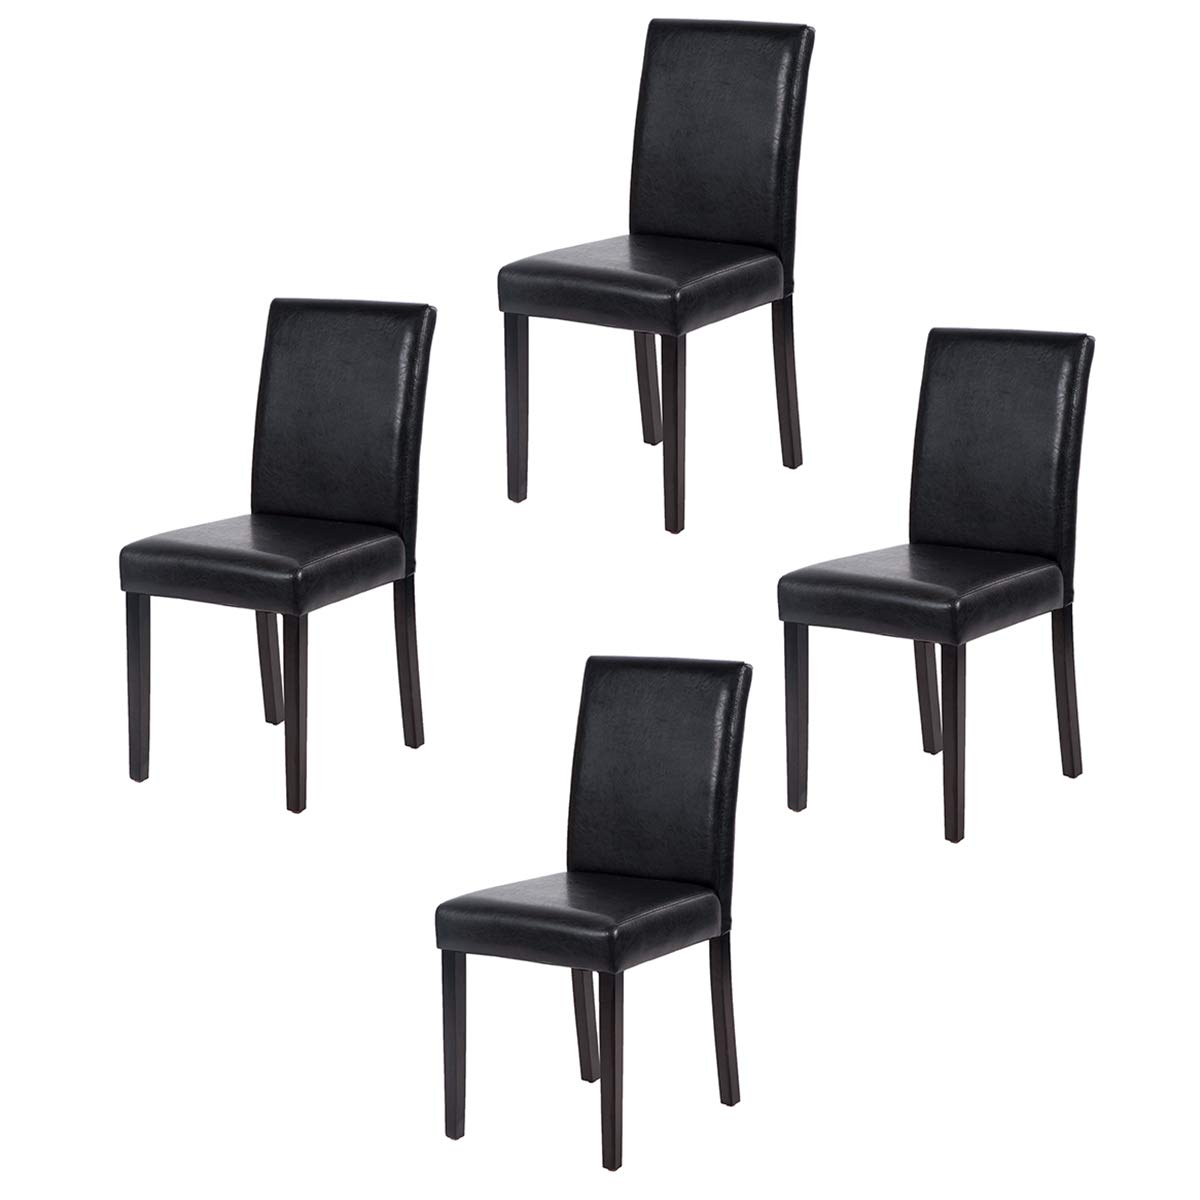 Leather Dining Room Chairs Set Of 4 Urban Style Leather Dining Chairs With Solid Wood Legs Chair